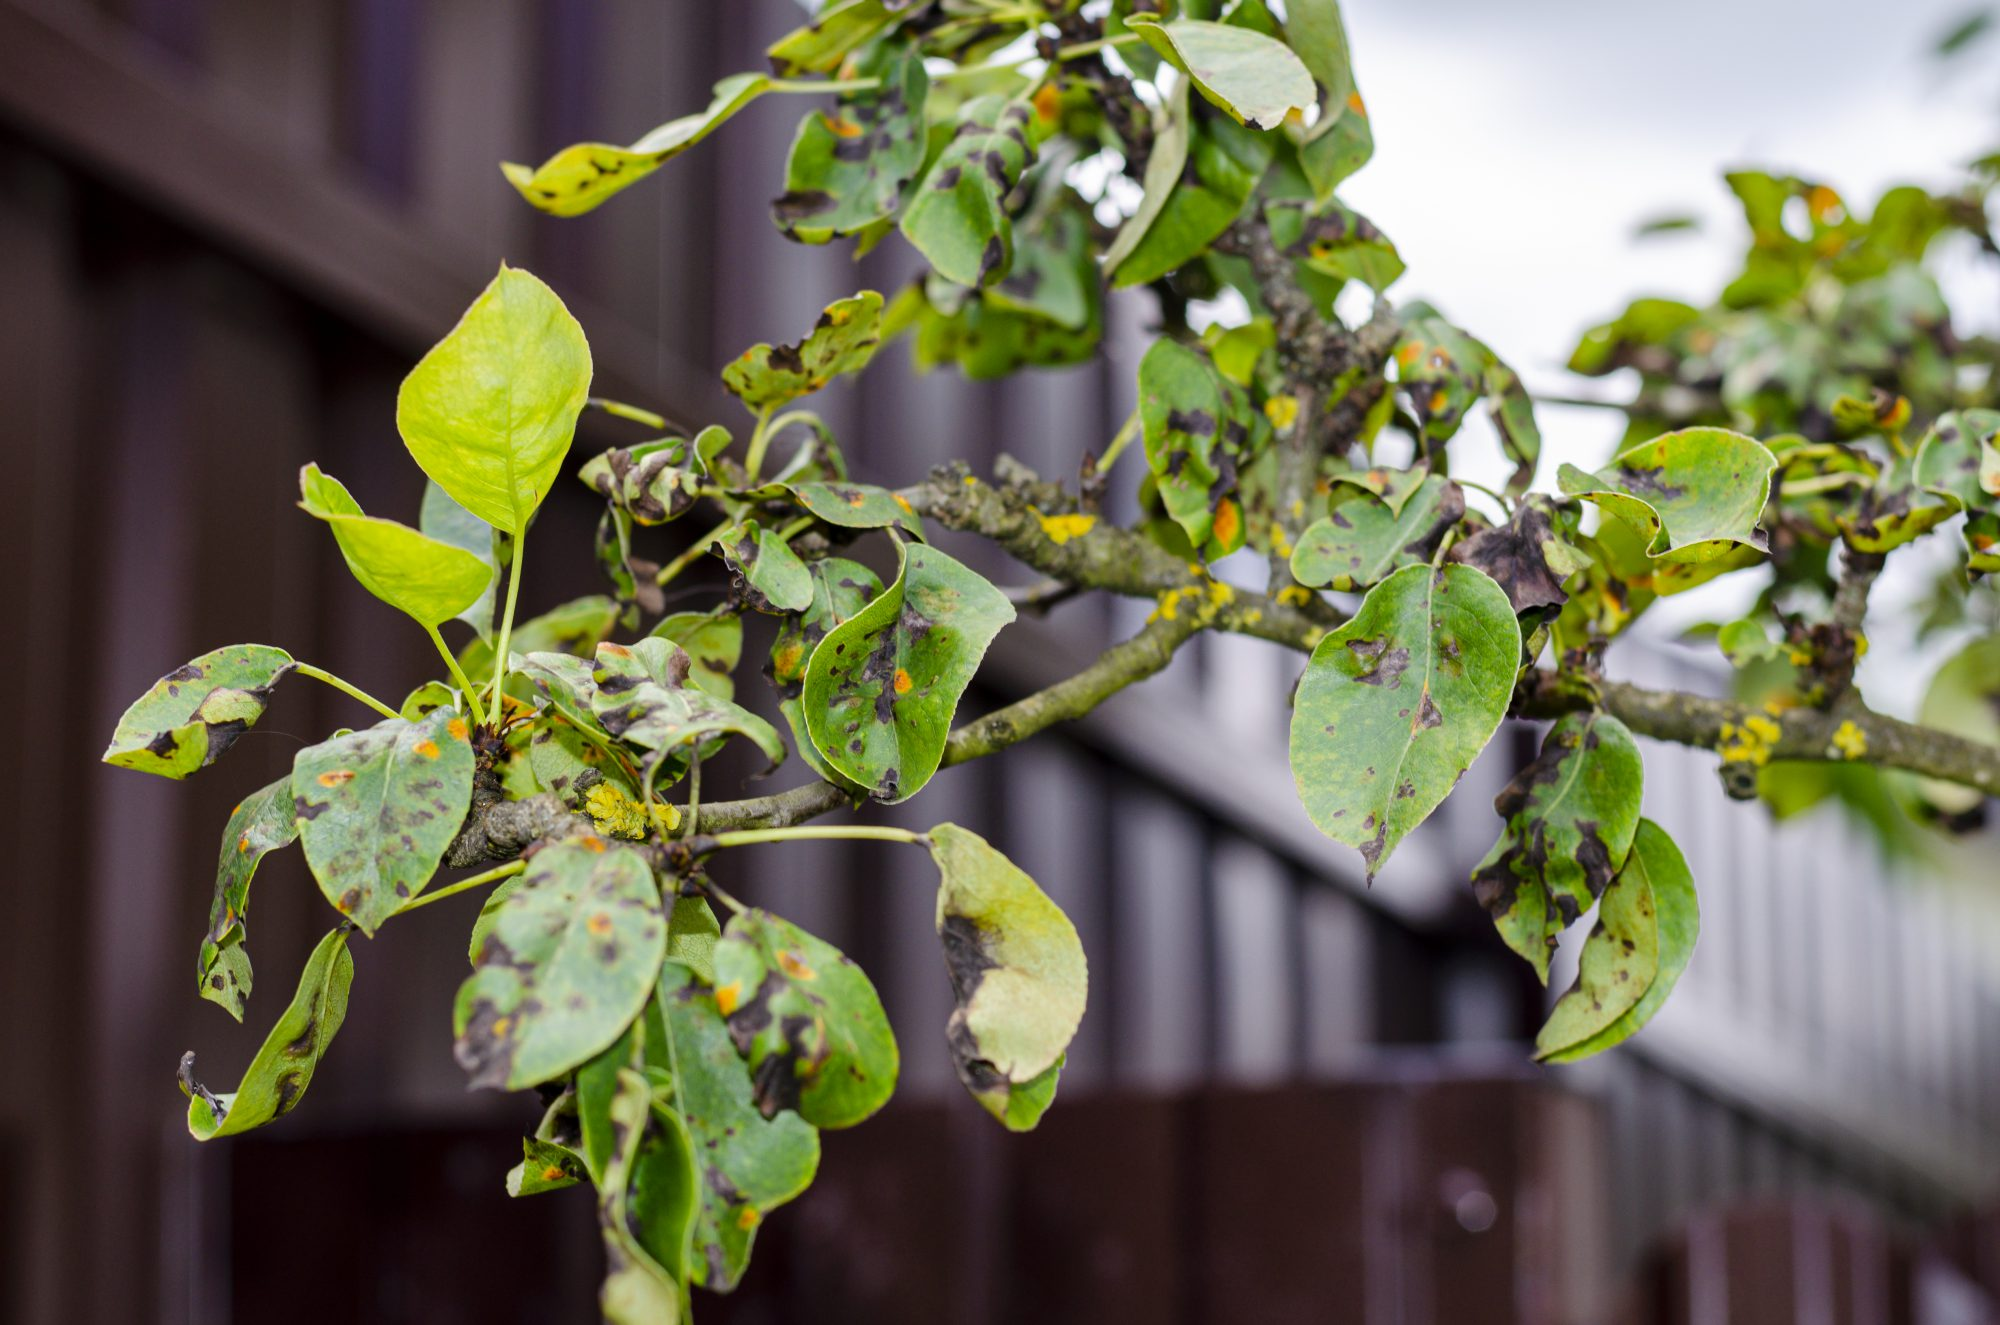 Leaves of fruit trees affected by fungal diseases